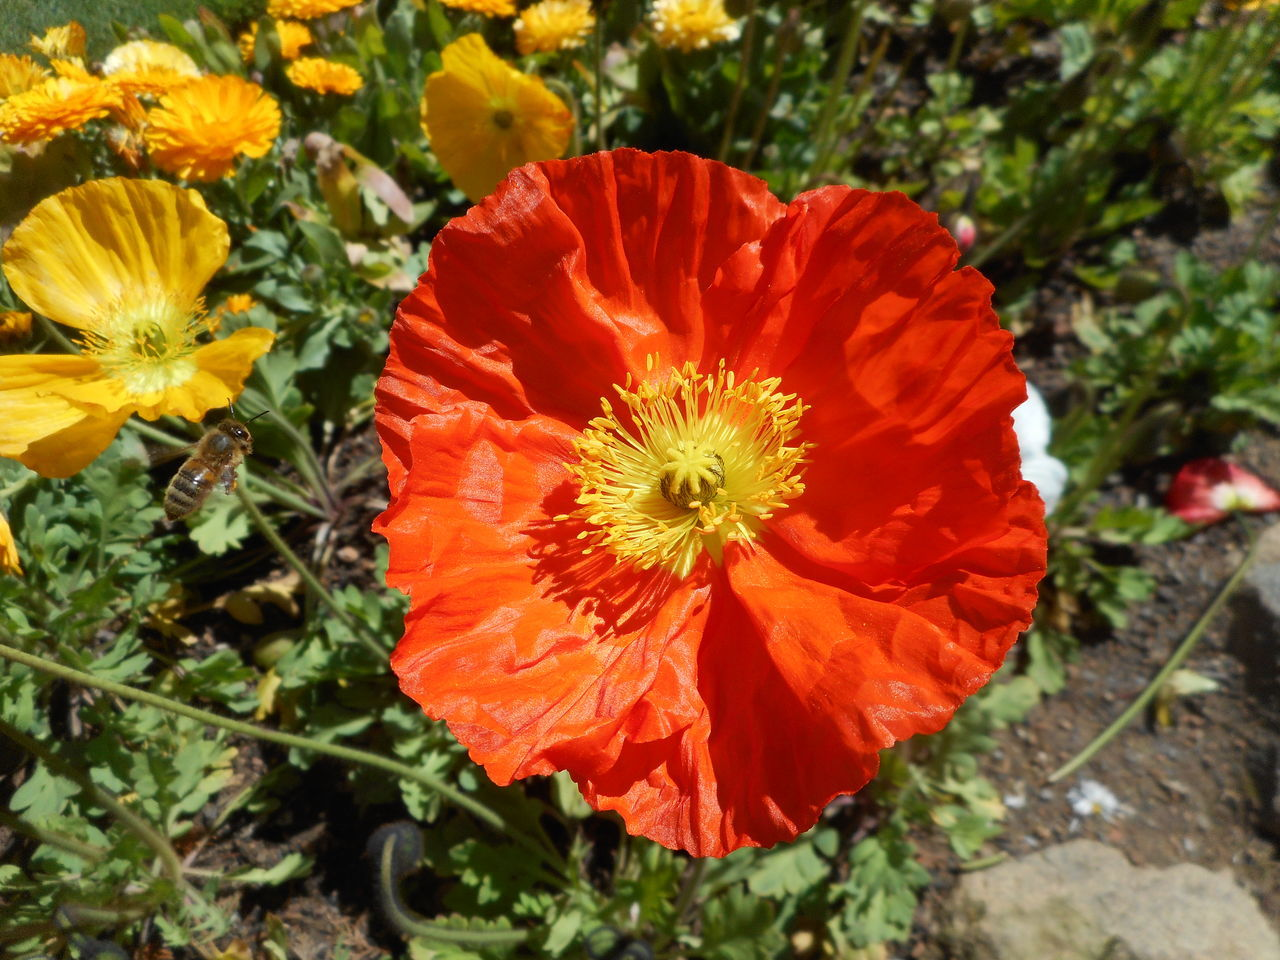 Bee.. makes a beeline.. for flower Beauty In Nature Bee Bee Flying Above Flower Beeline Blooming Bright Sunshine Floriade Canberra Day Flower Flower Head Fragility Growth Insect Nature No People Orange Color Orange Flower Orange Flowers Outdoors Petal Plant Poppy The Purist (no Edit, No Filter) Yellow Centered Flowers Floriade